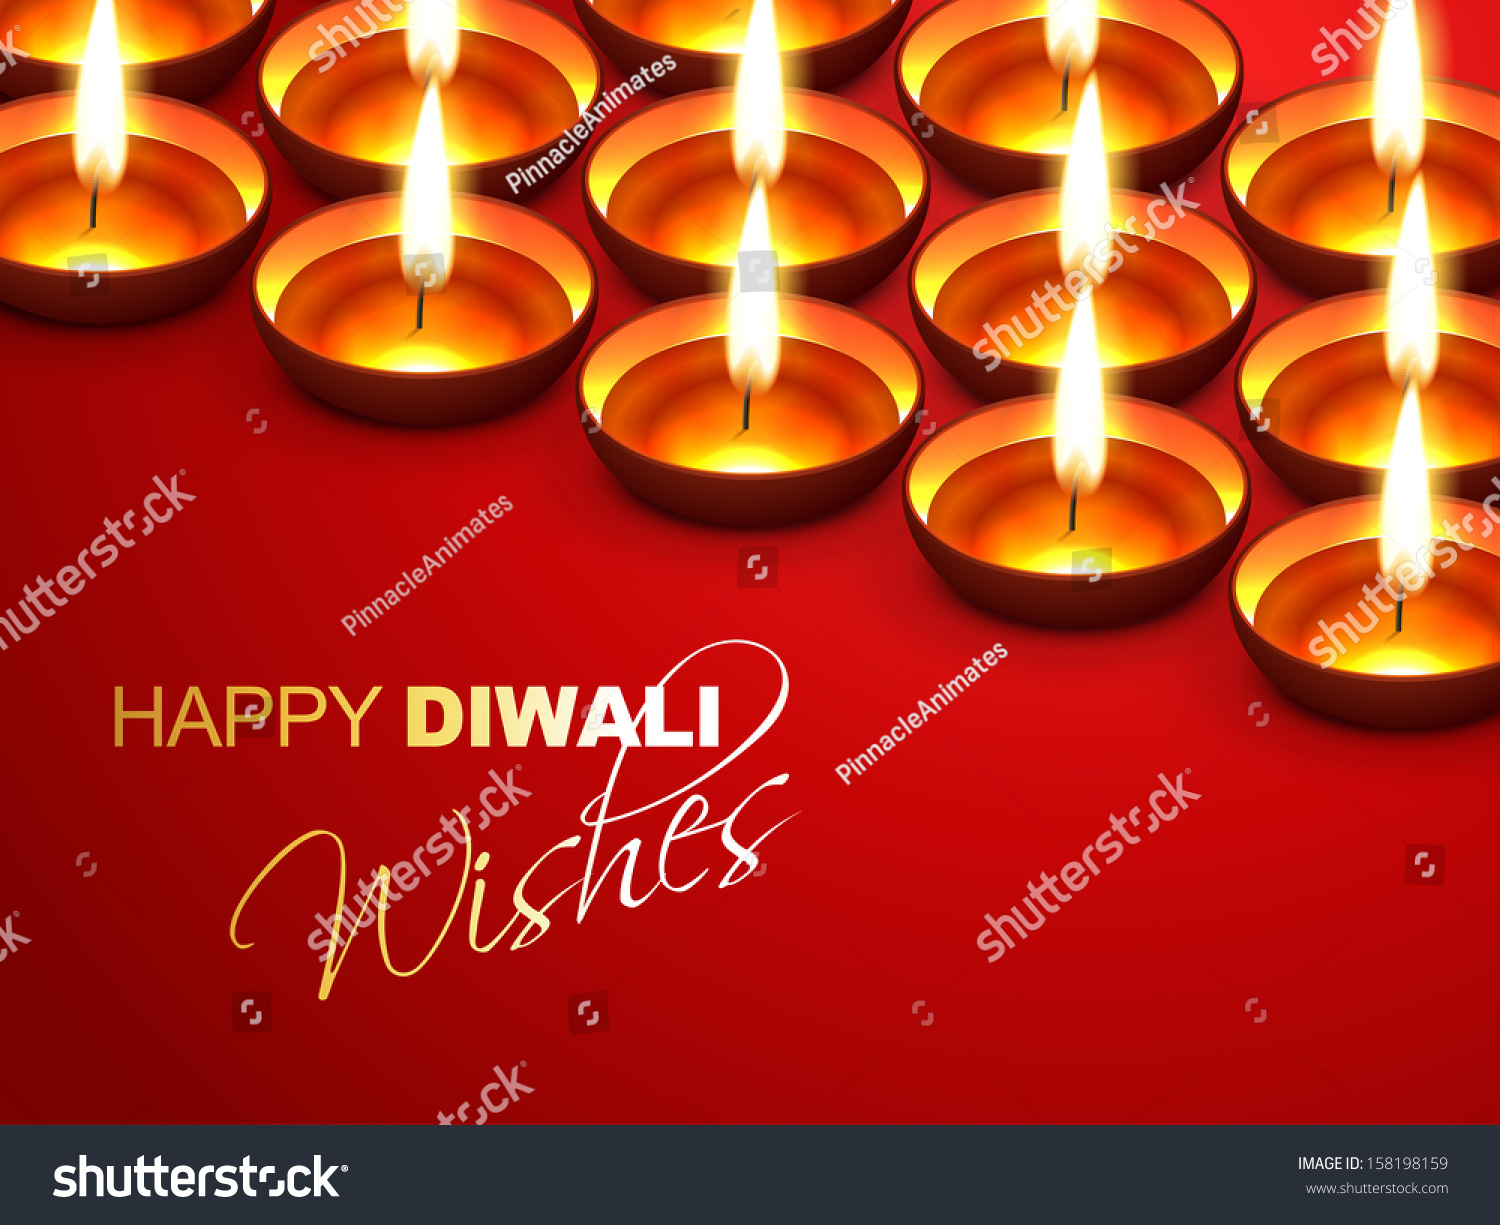 Happy Diwali Wishes Greeting Design Stock Vector Royalty Free